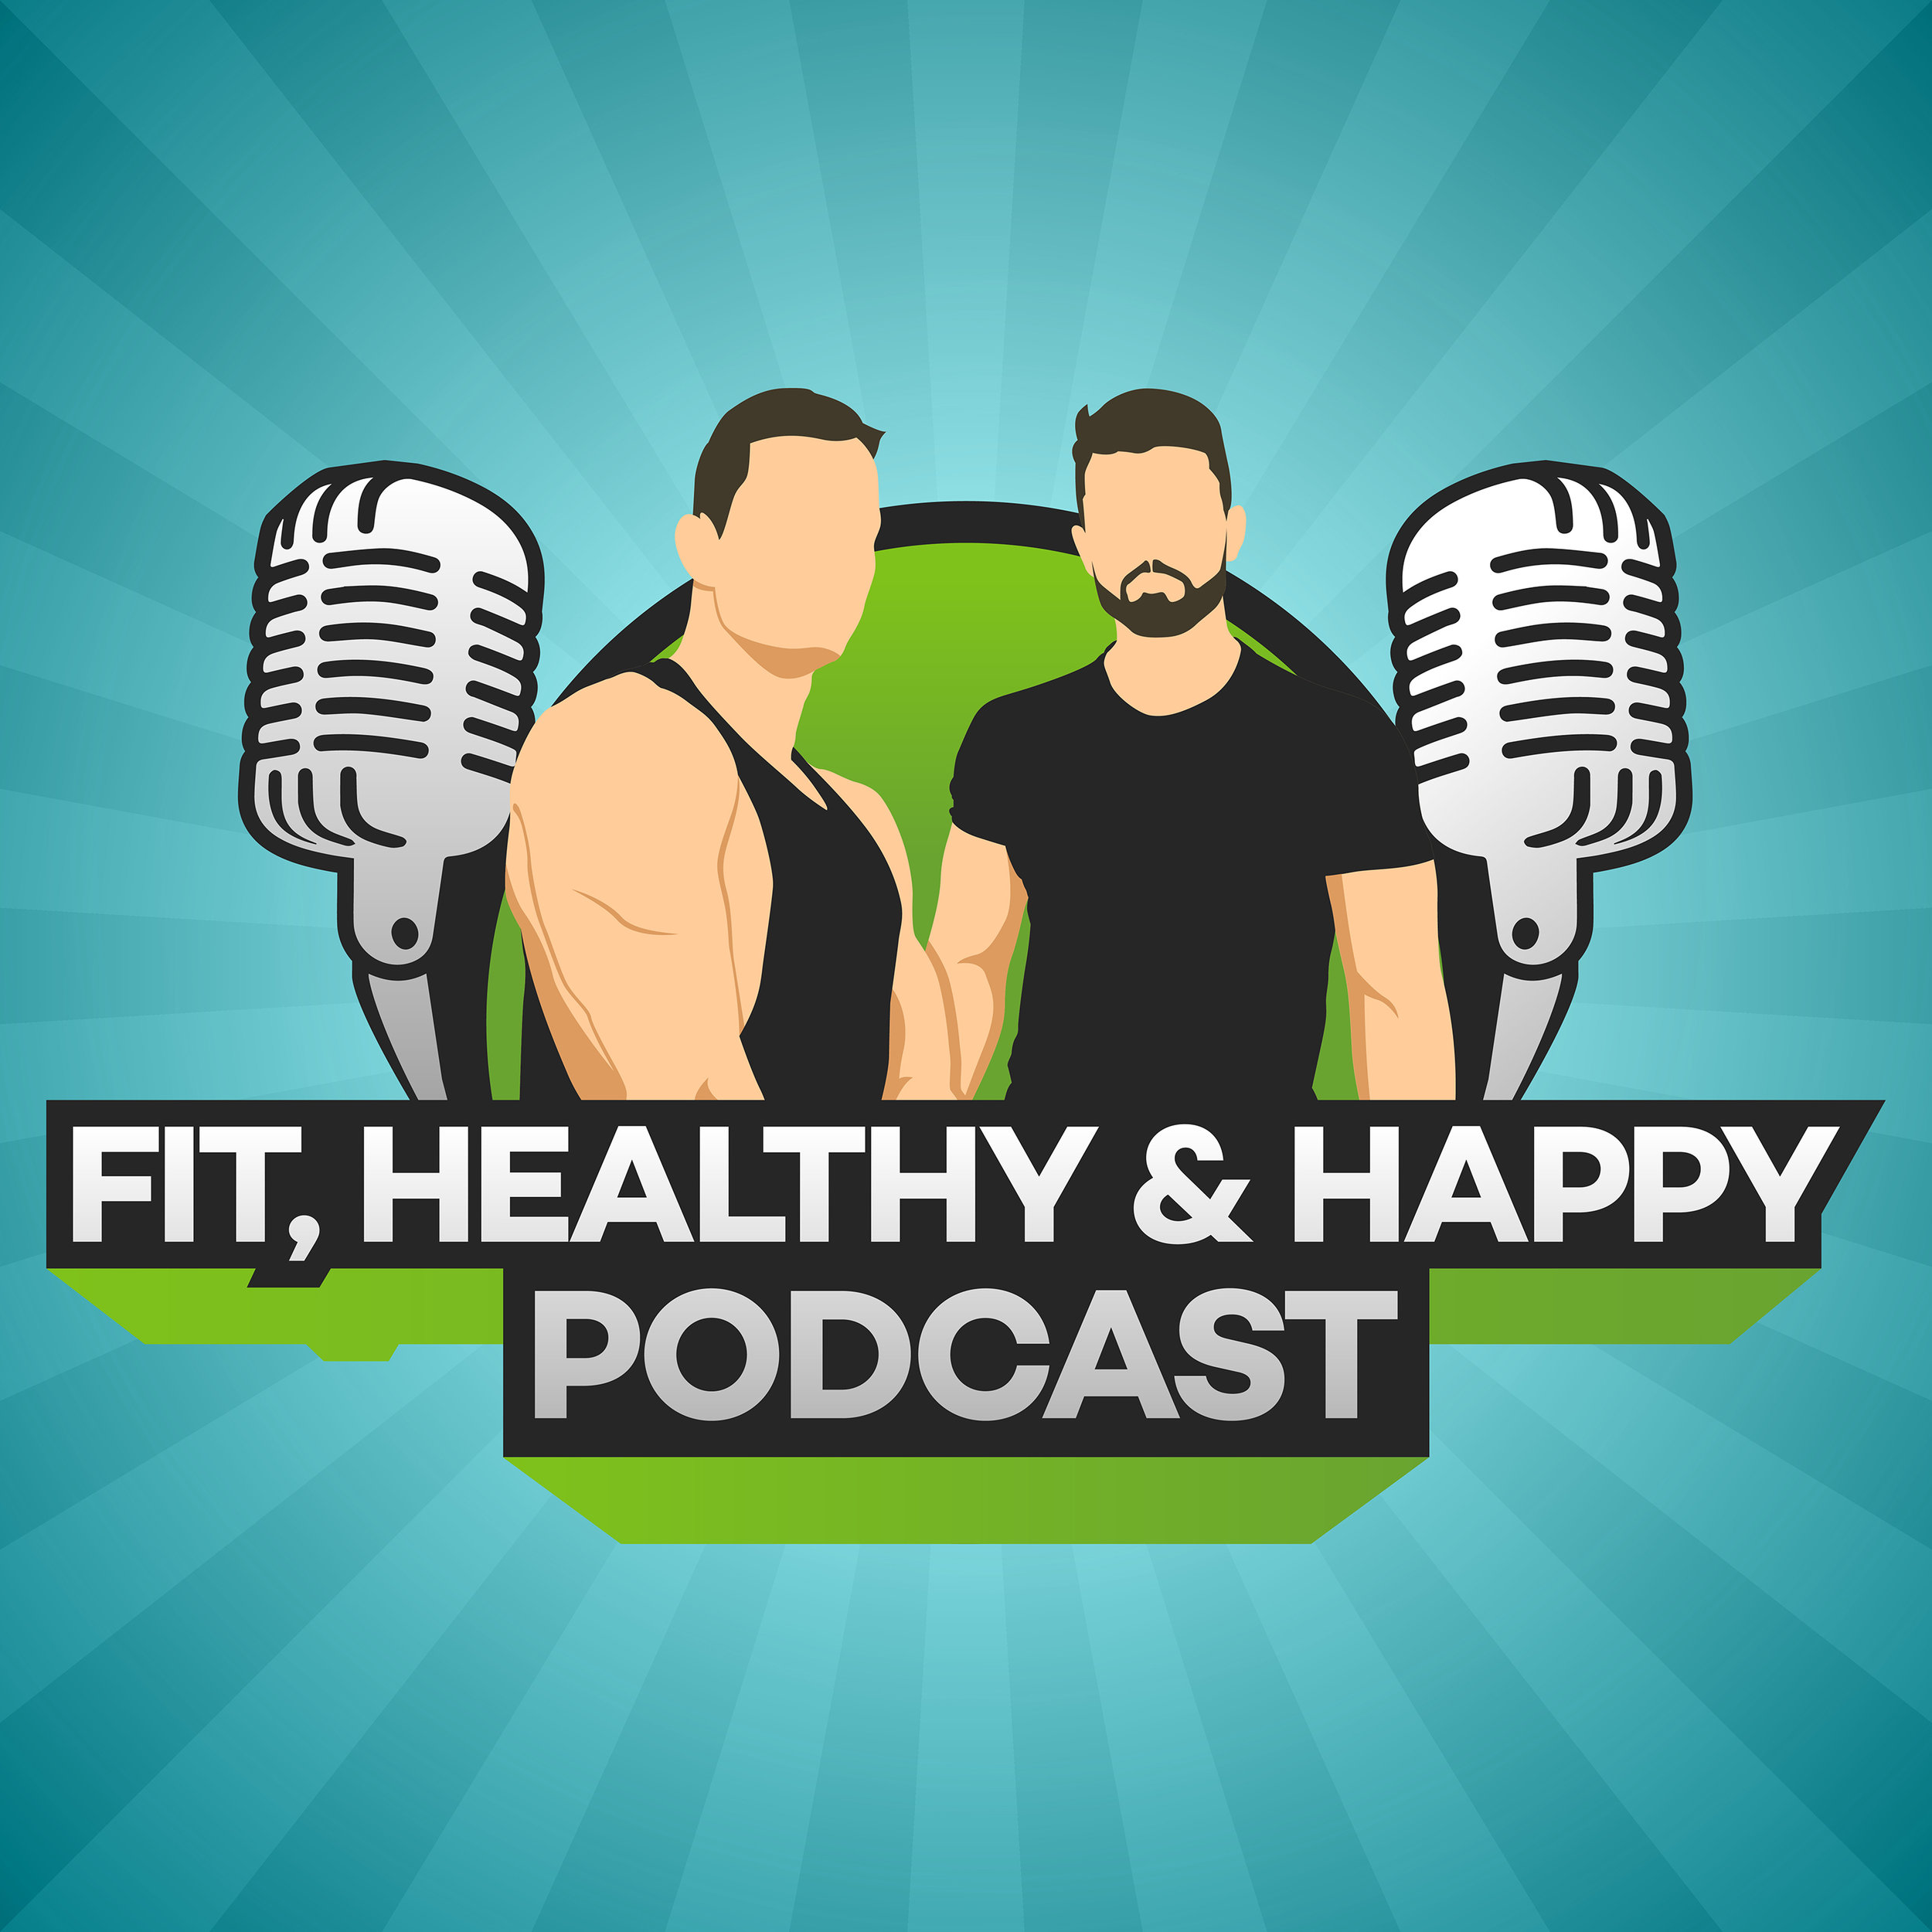 Fit Healthy & Happy Podcast